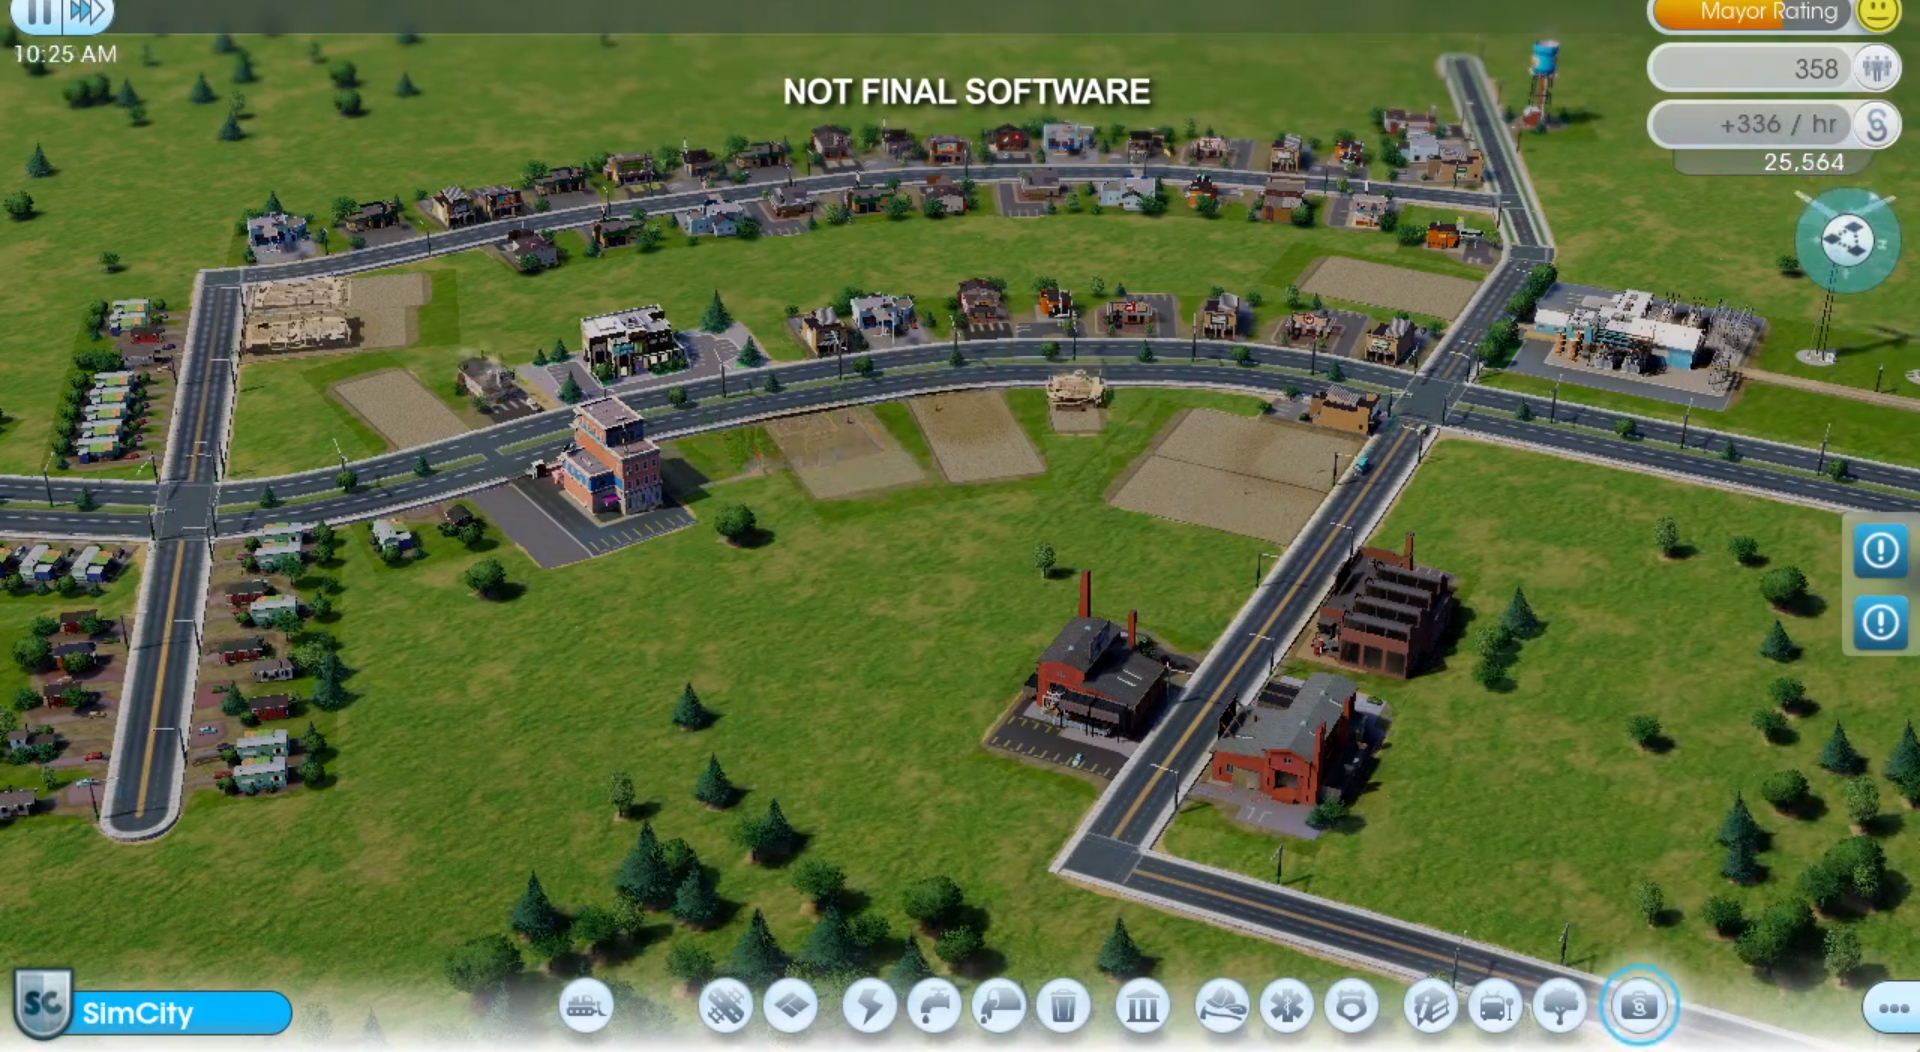 SimCity in action